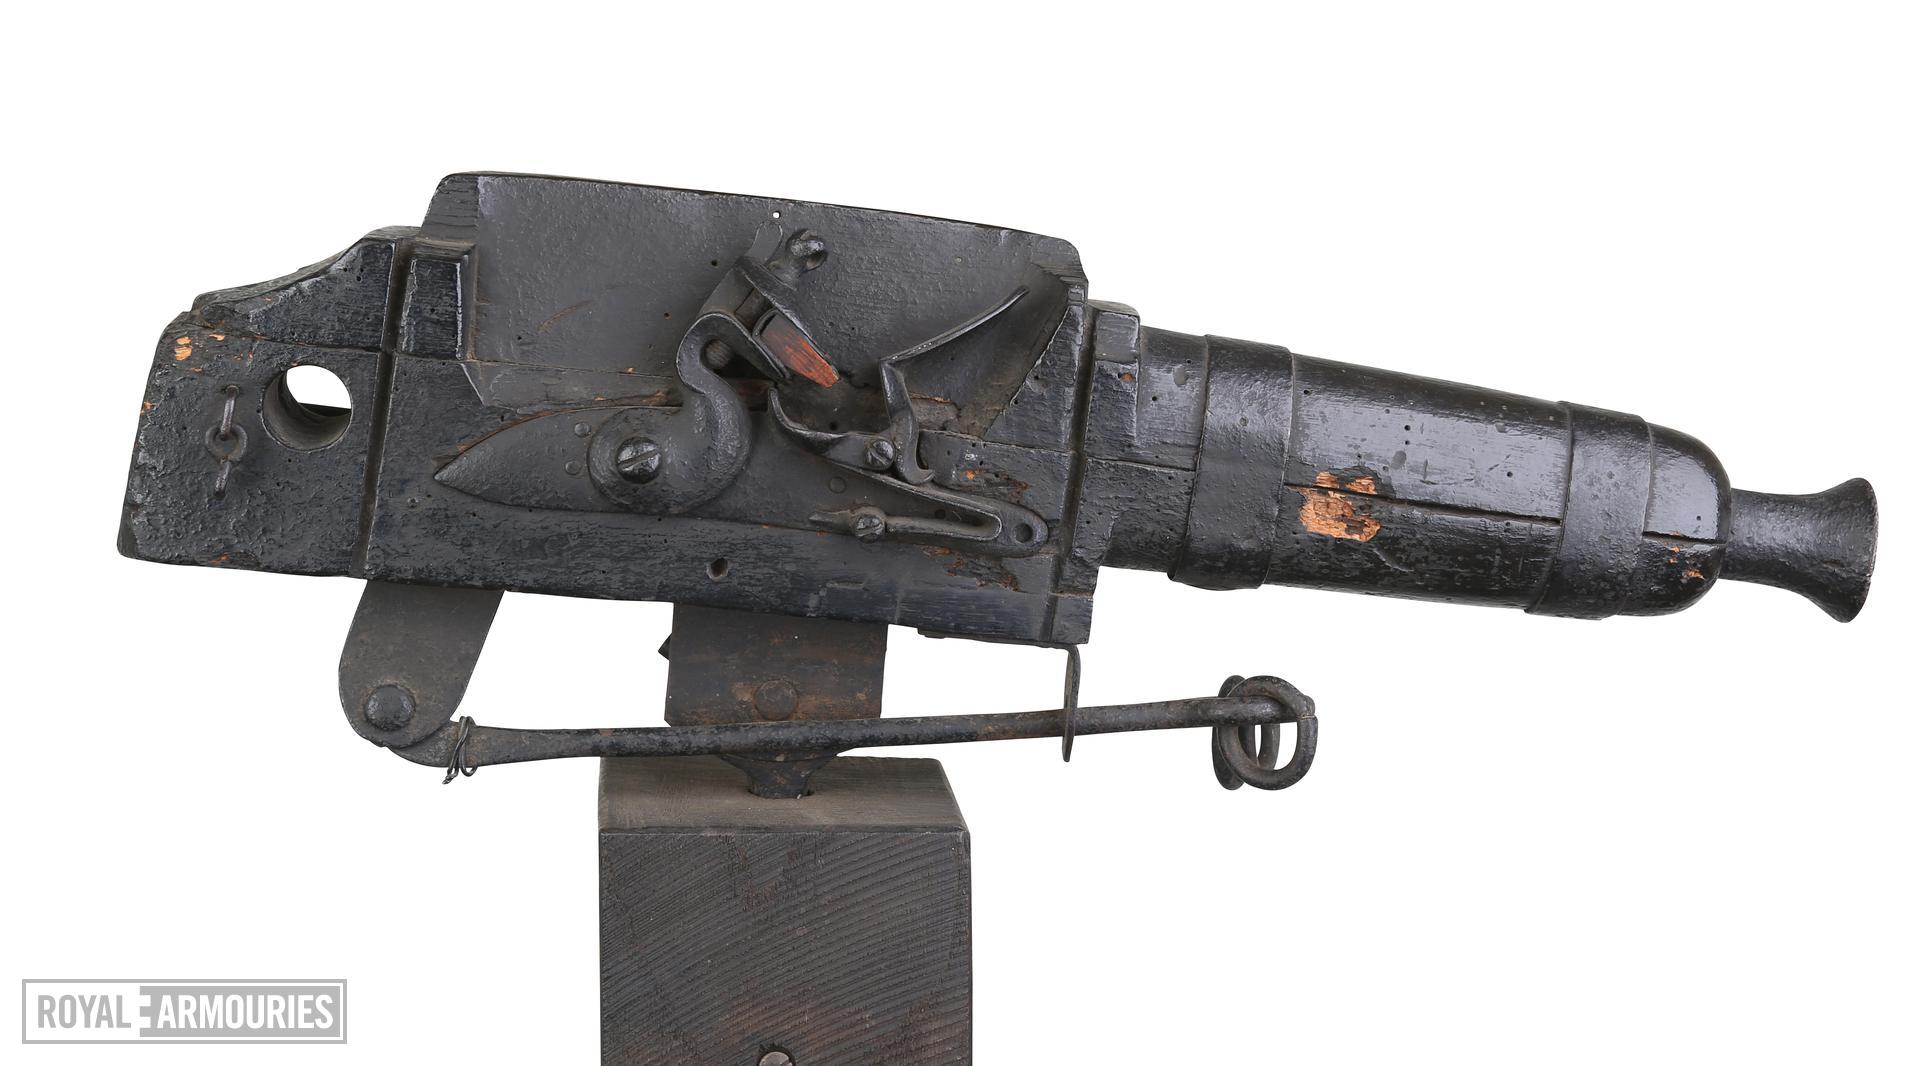 Flintlock alarm gun on wooden stand Bowstead on lock. XII.6003